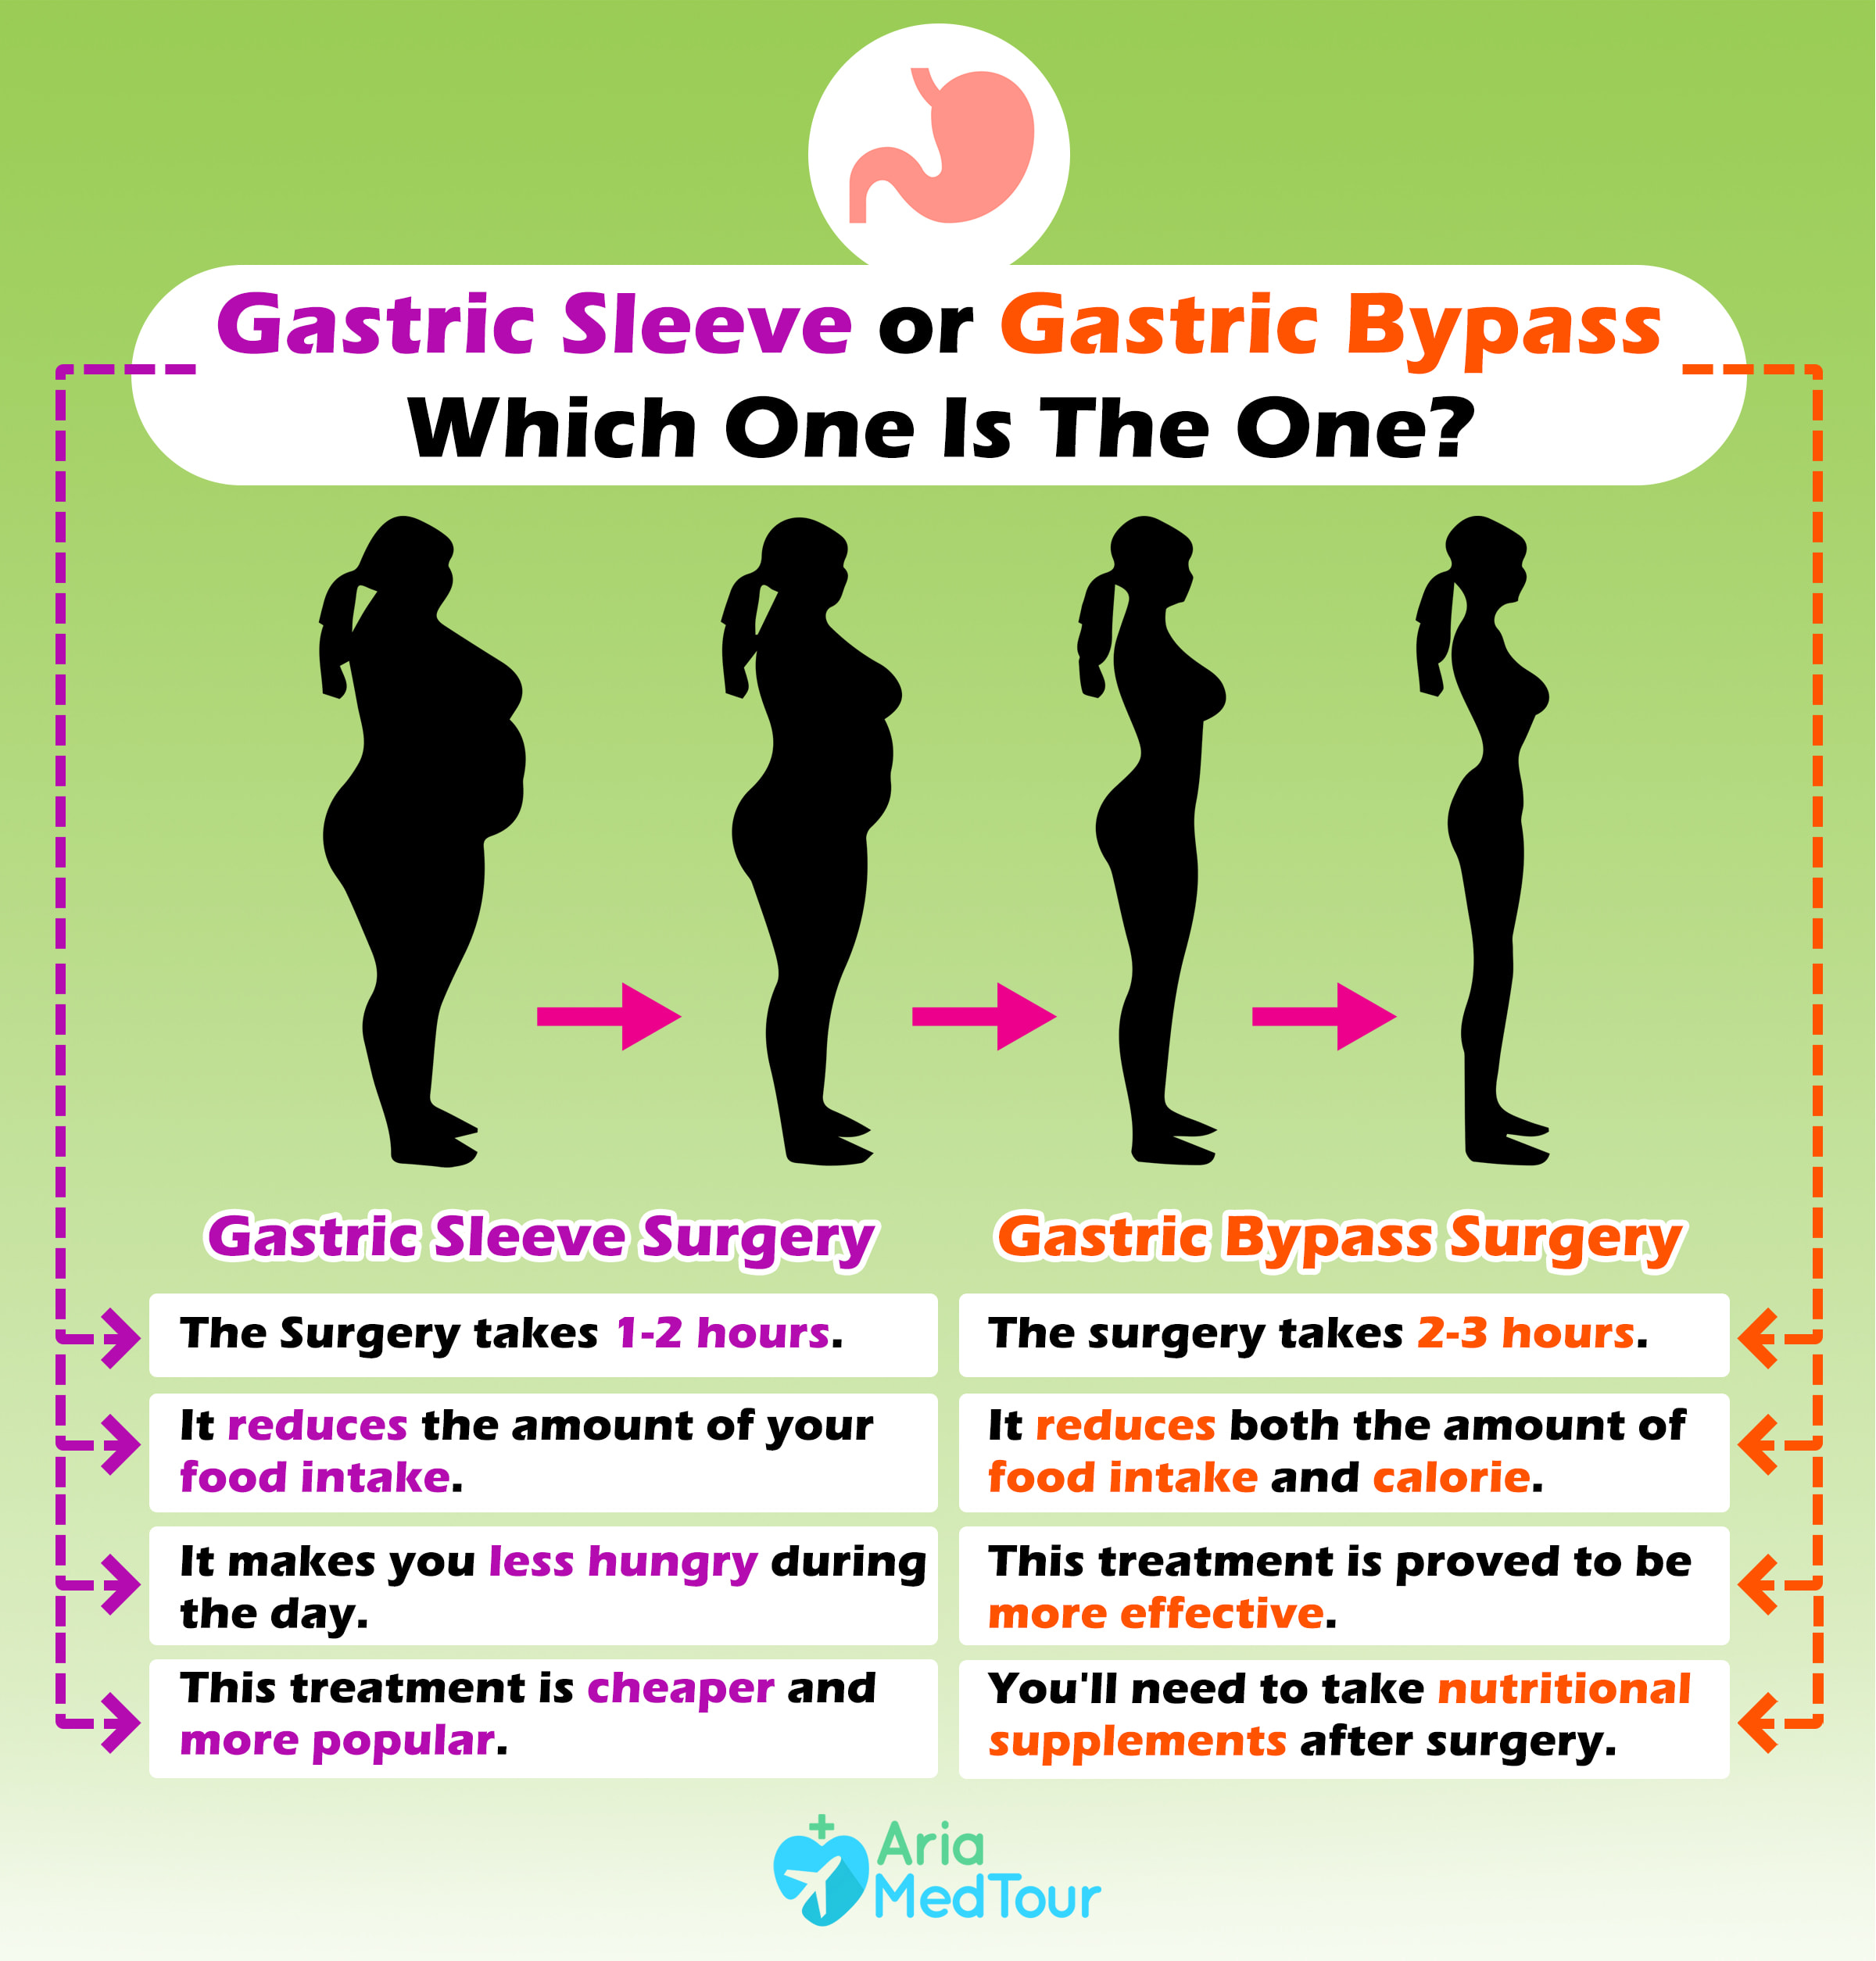 infographic showing gastric sleeve and bypass differences